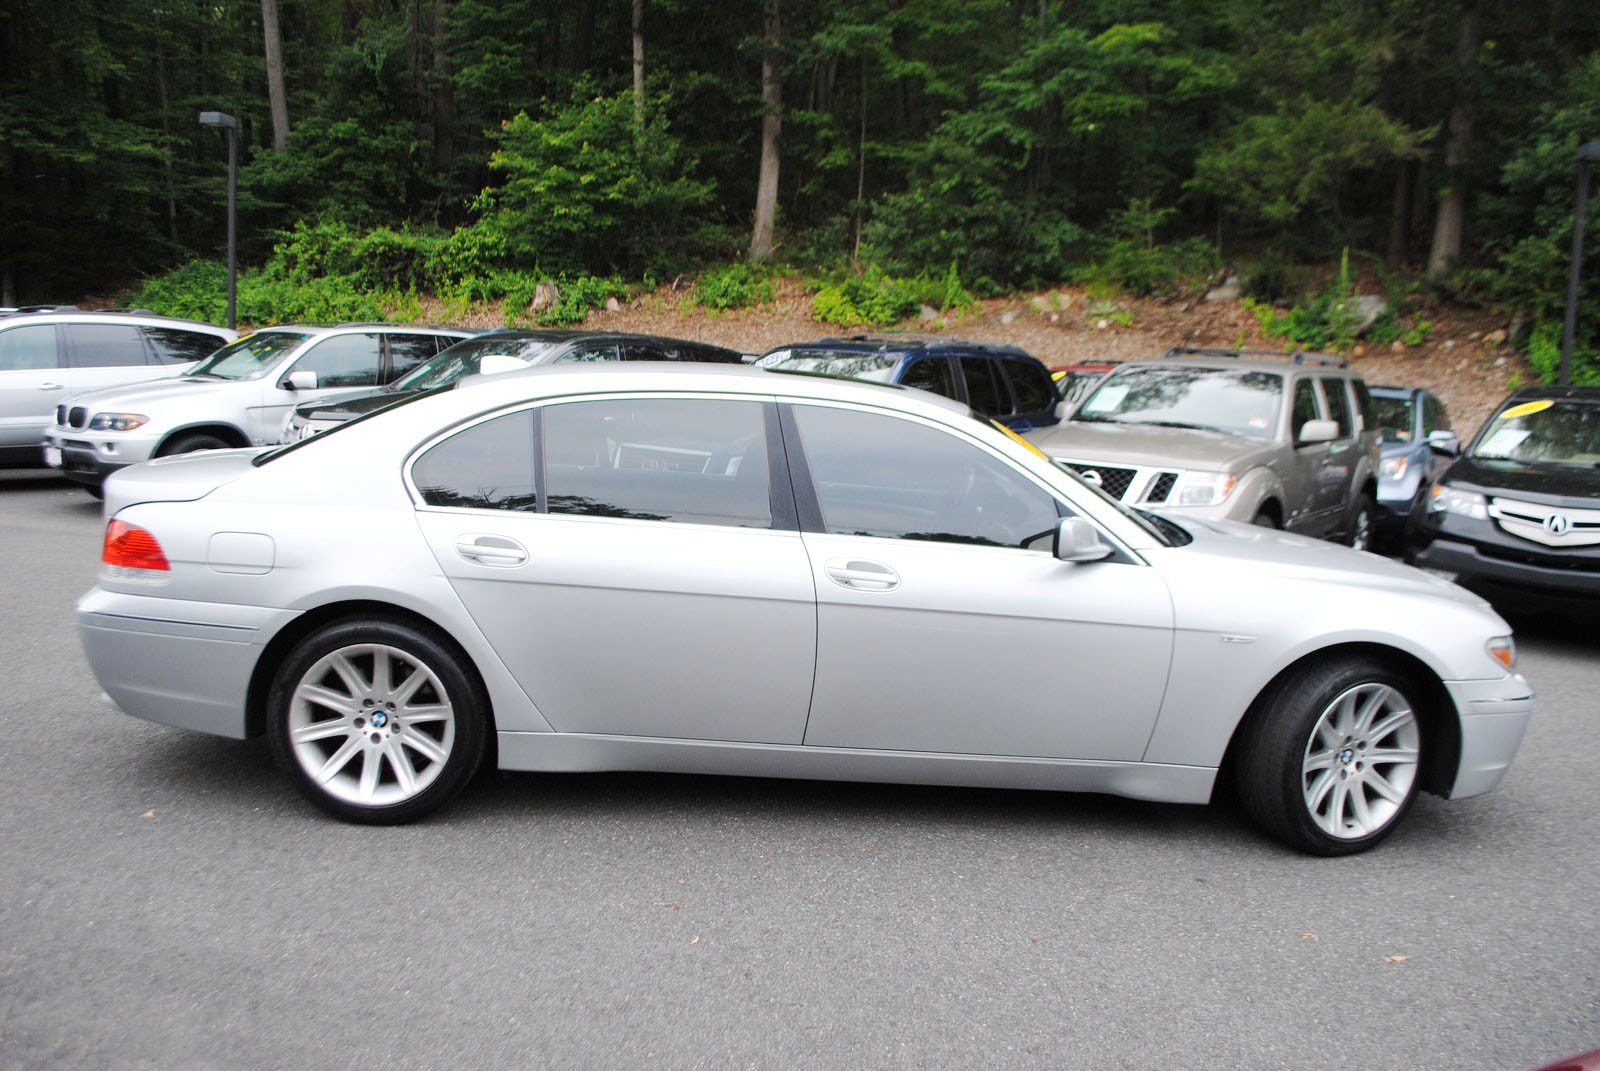 Used 745 Bmw For Sale Used 2004 BMW 745Li For Sale | West Milford NJ